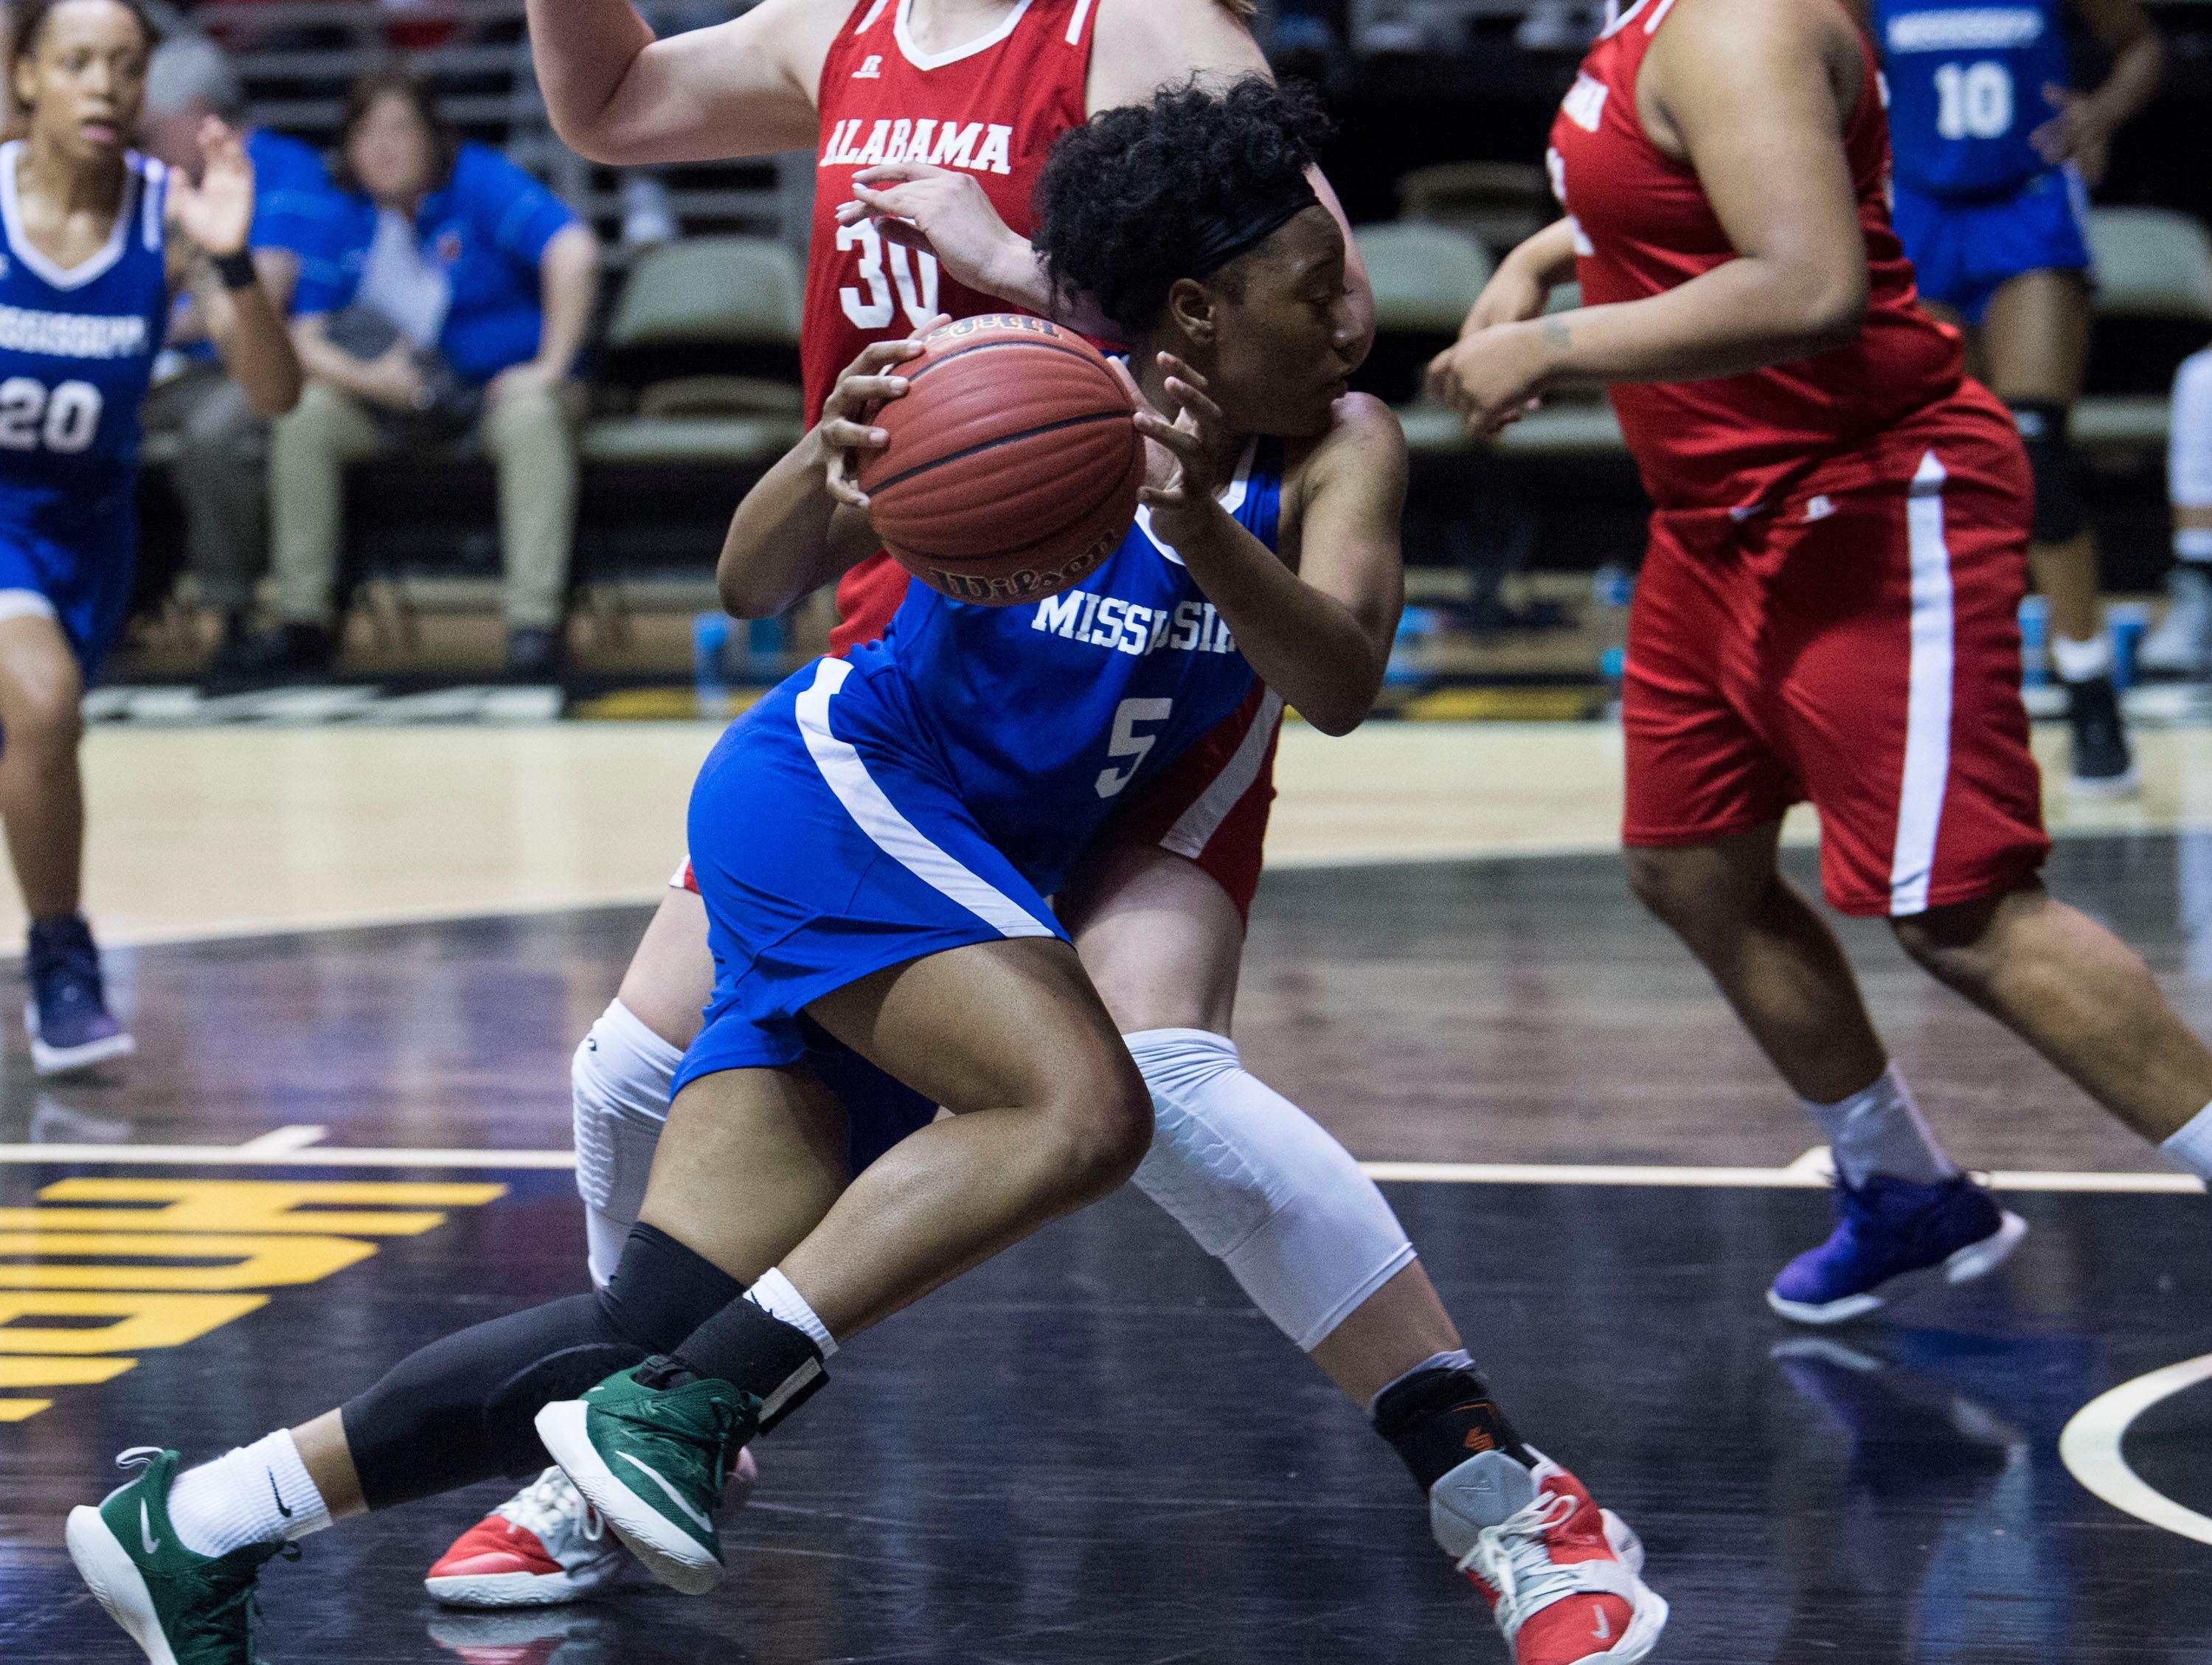 Mississippi's Ebony Gayden (5) drives to the basket on Alabama's River Baldwin (30) during the Alabama-Mississippi All-Star game at the Dunn-Oliver Acadome in Montgomery, Ala., on Friday, March 15, 2019. Alabama All-stars defeated the Mississippi All-stars 101-82.